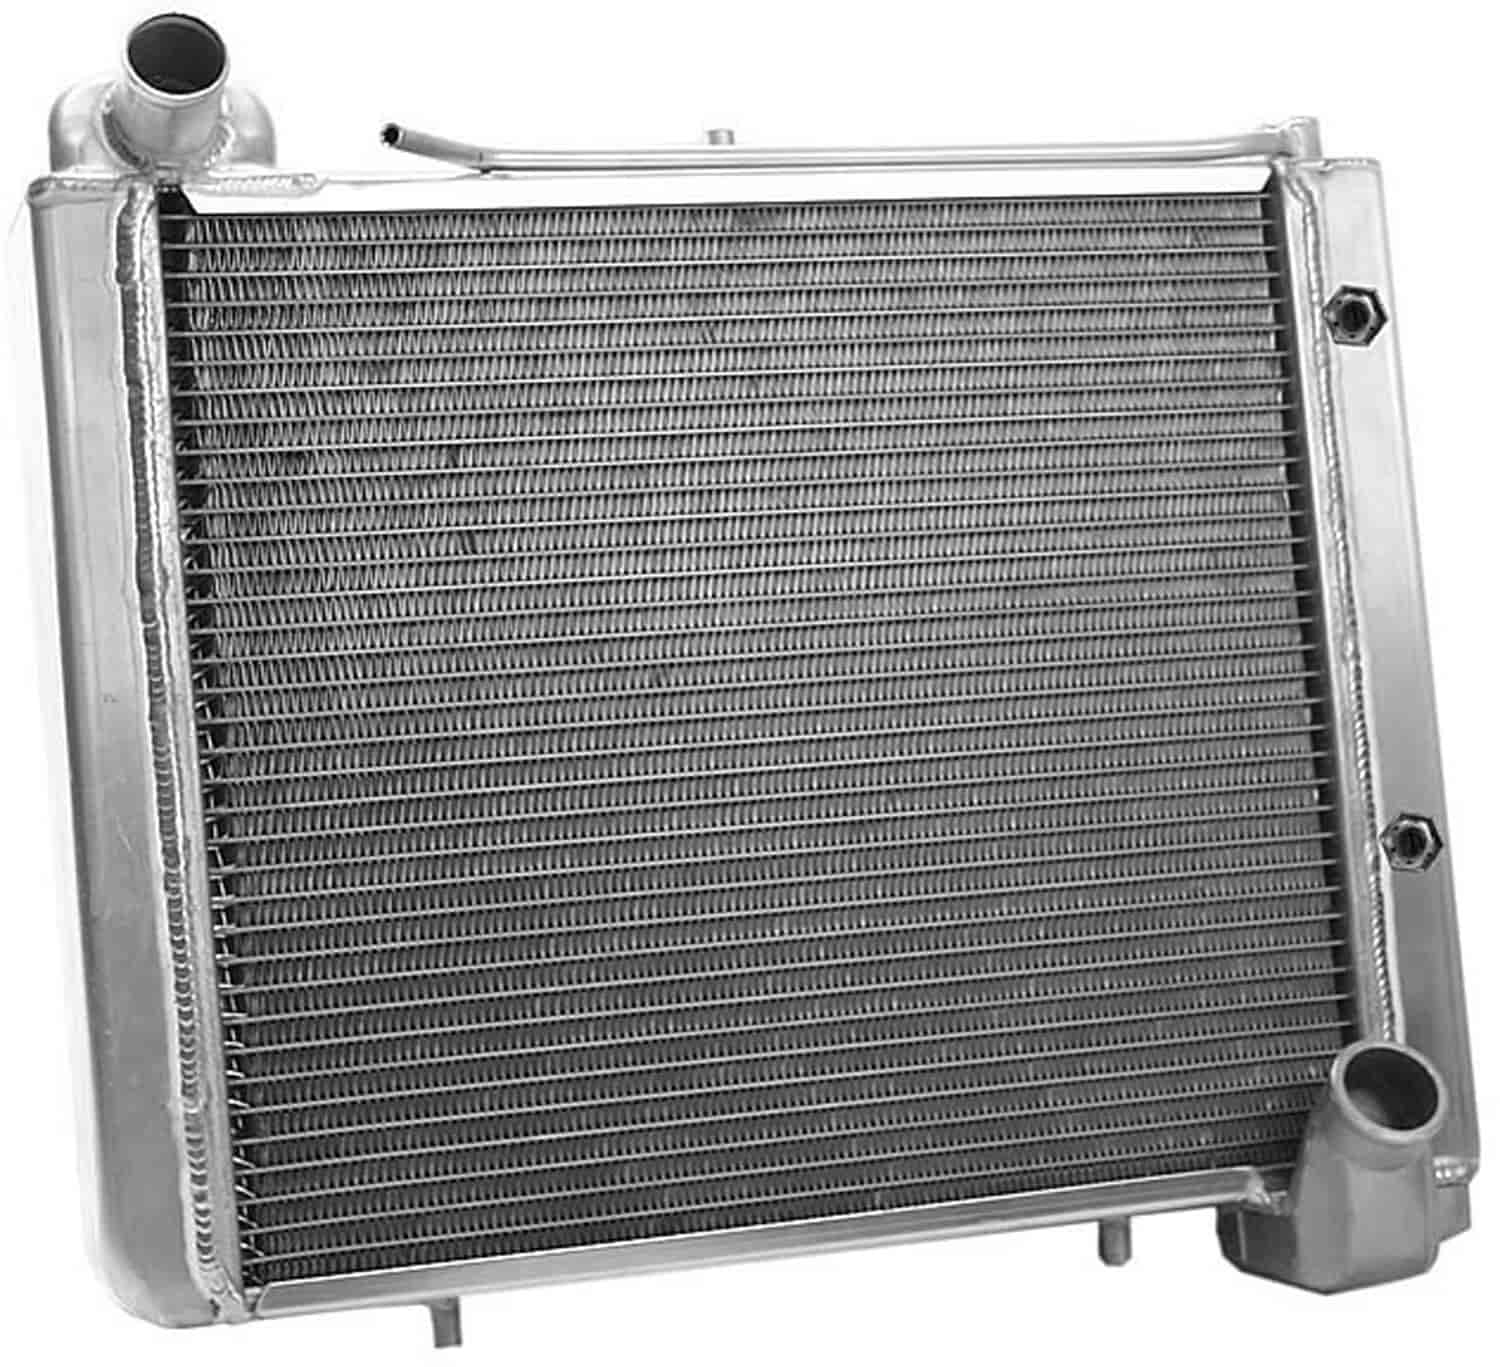 Griffin Radiators 6-70064